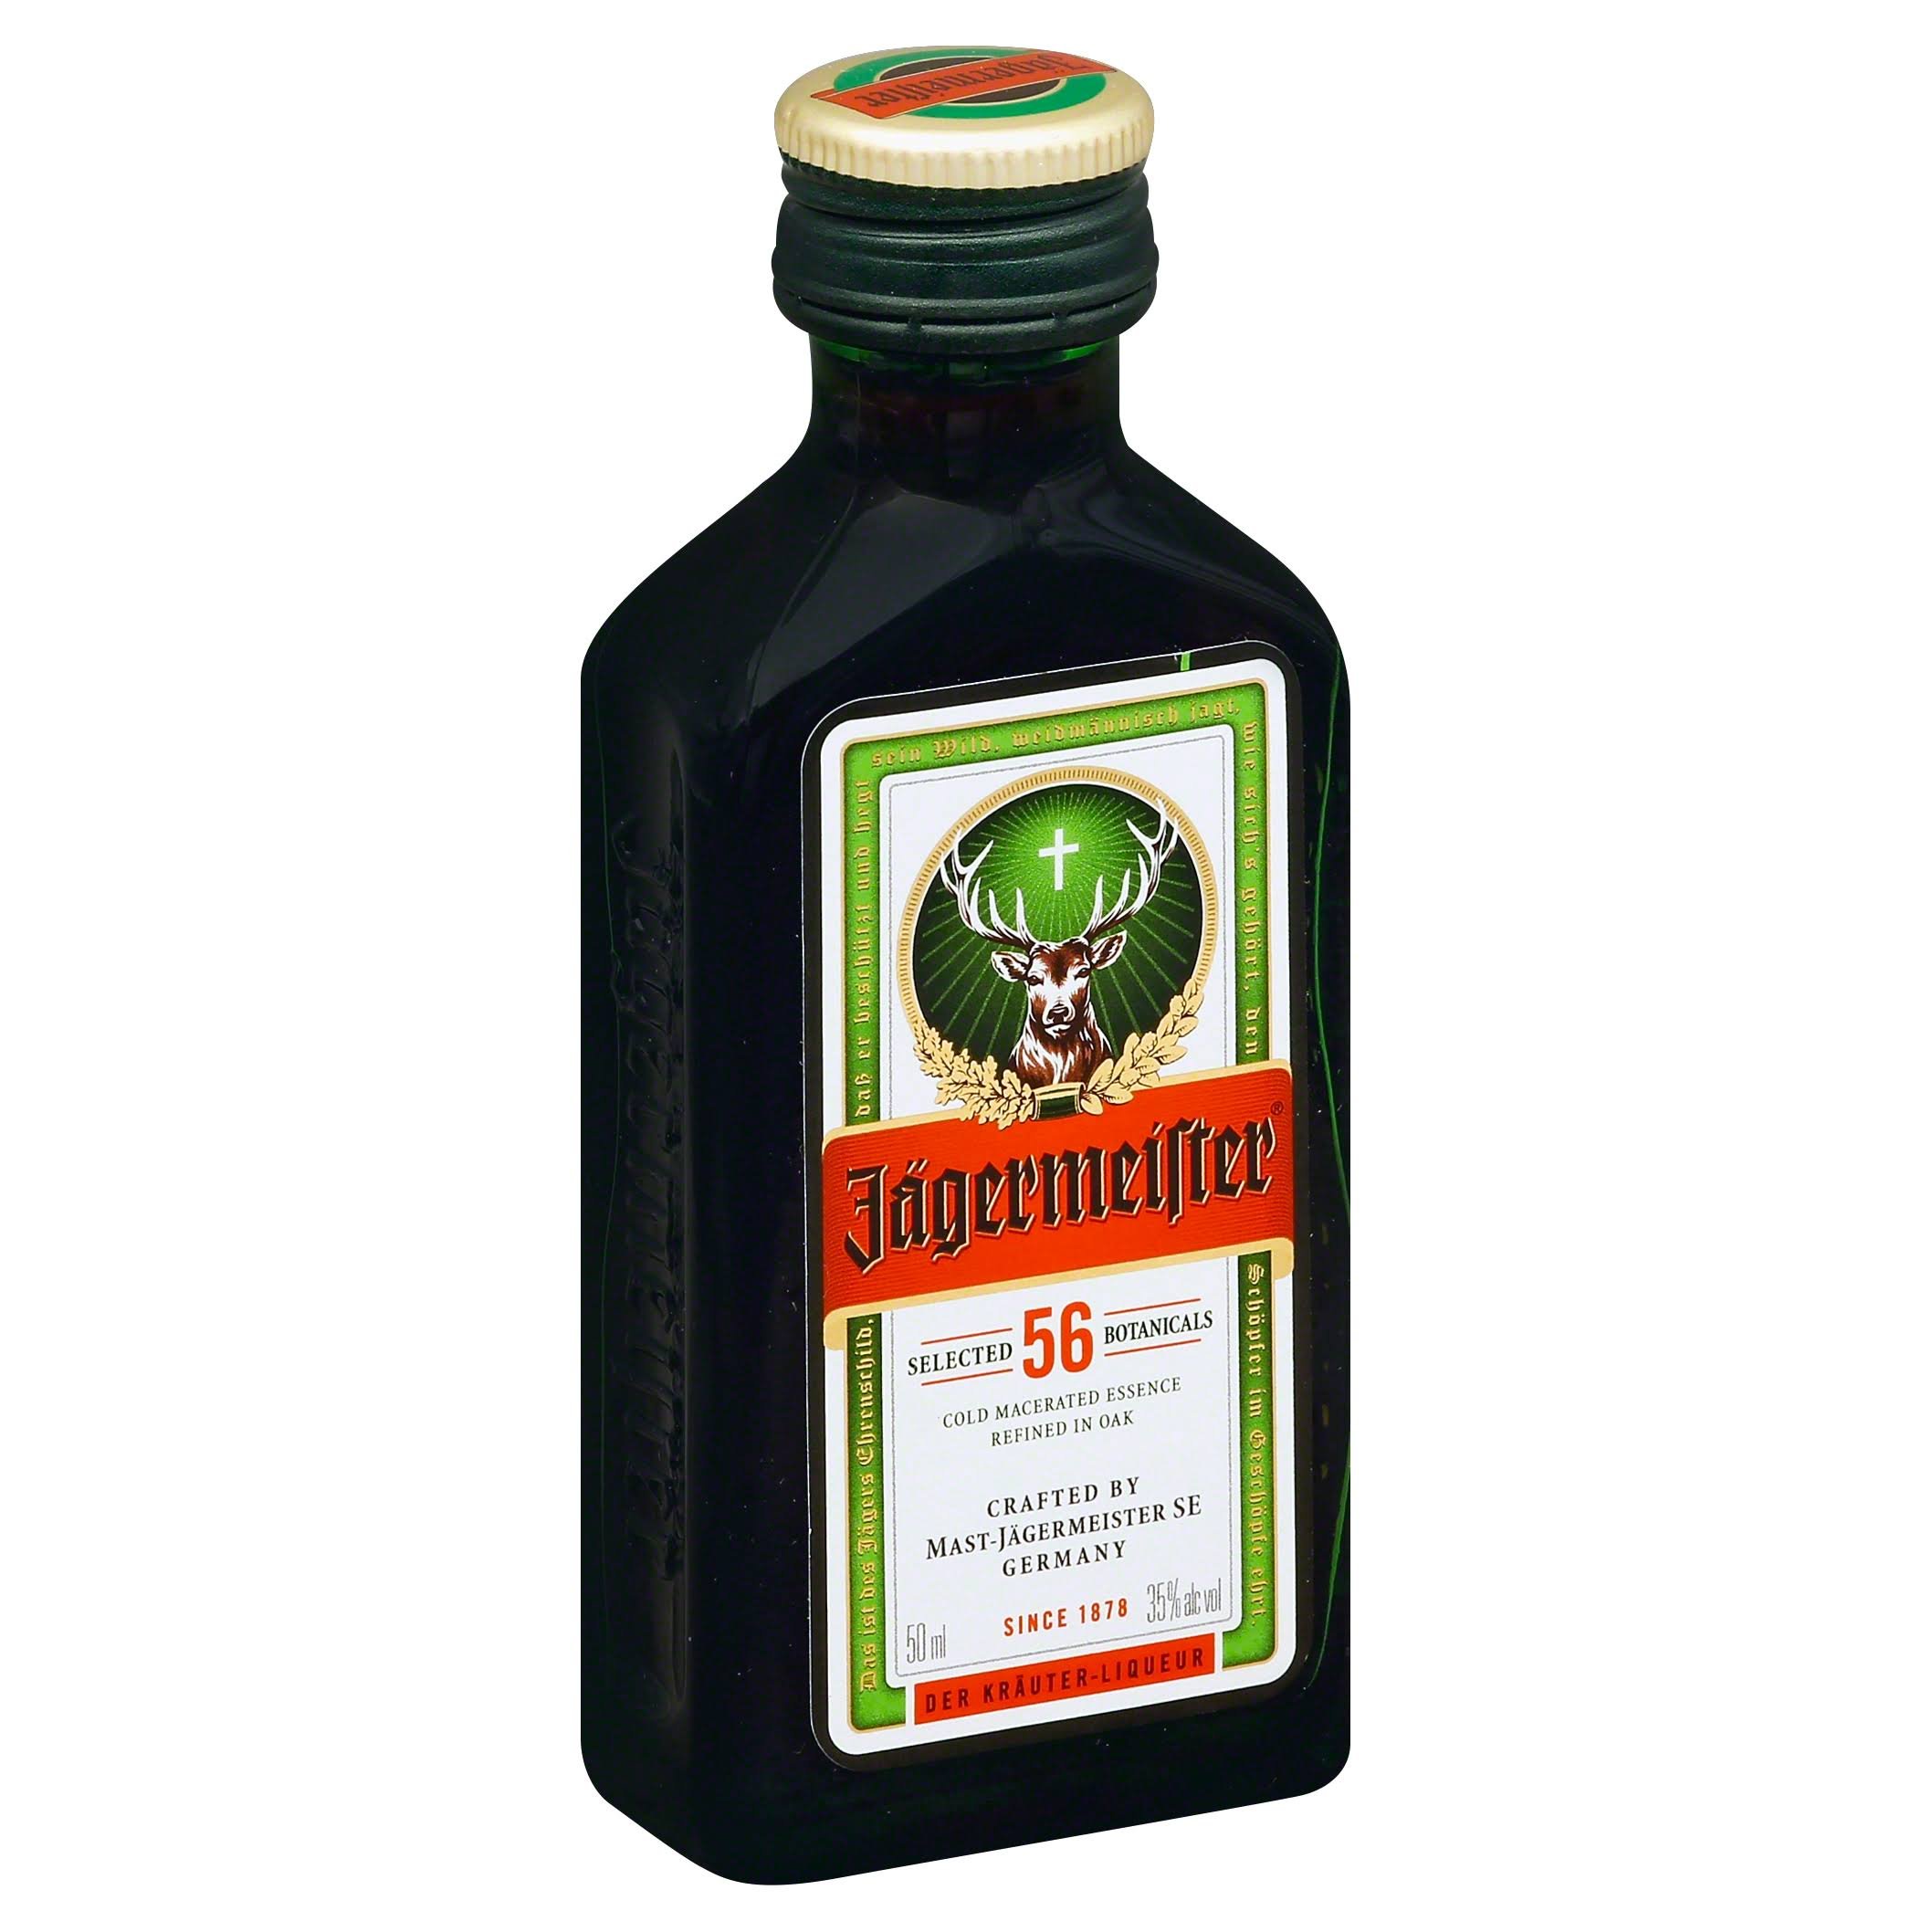 Jagermeister Liqueur - 50 ml bottle